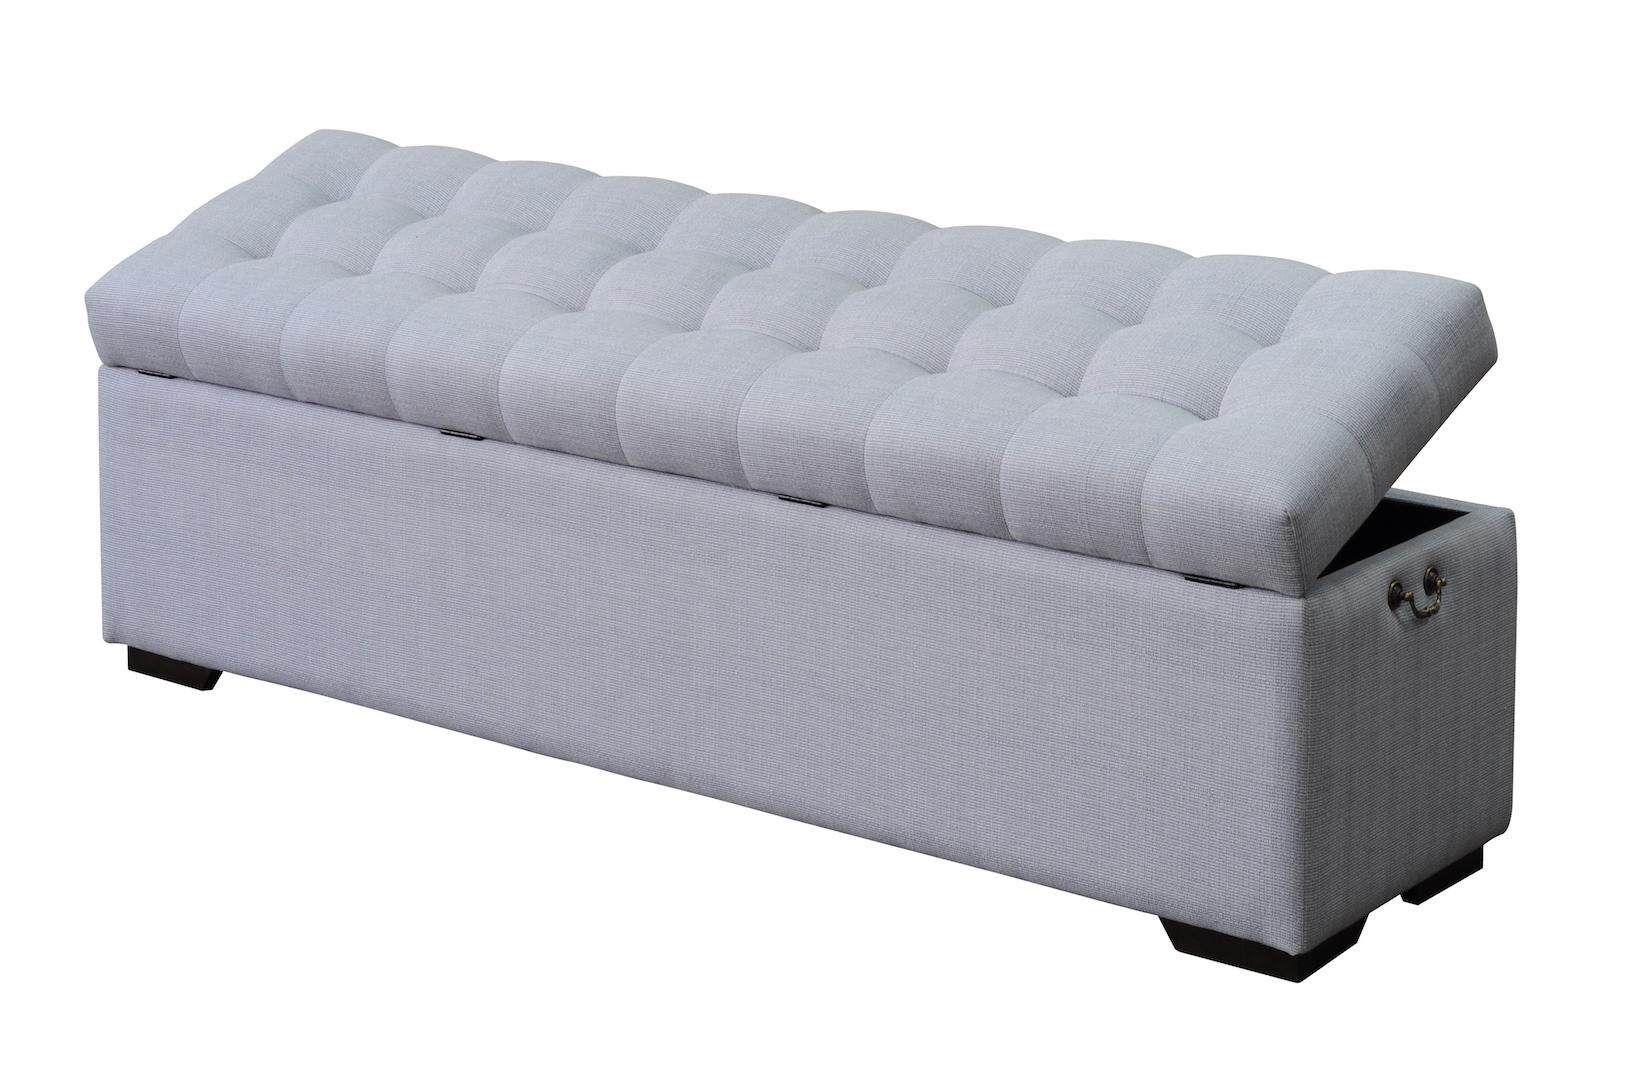 Solano Ottoman Storage Bench Chair With CLR Waterproof Fabric